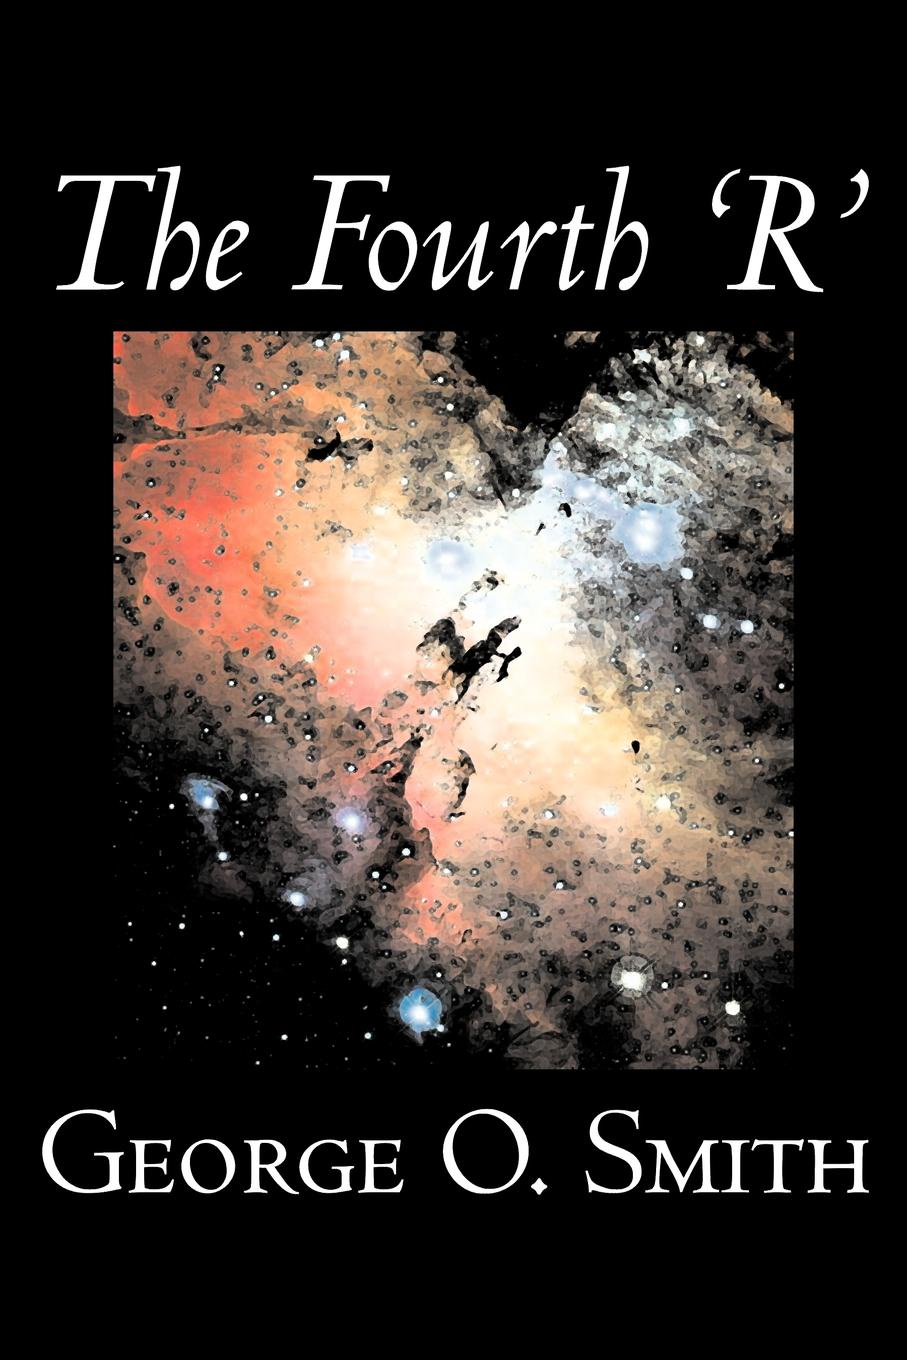 George O. Smith The Fourth 'R' by George O. Smith, Science Fiction, Adventure, Space Opera barbara boswell the brennan baby